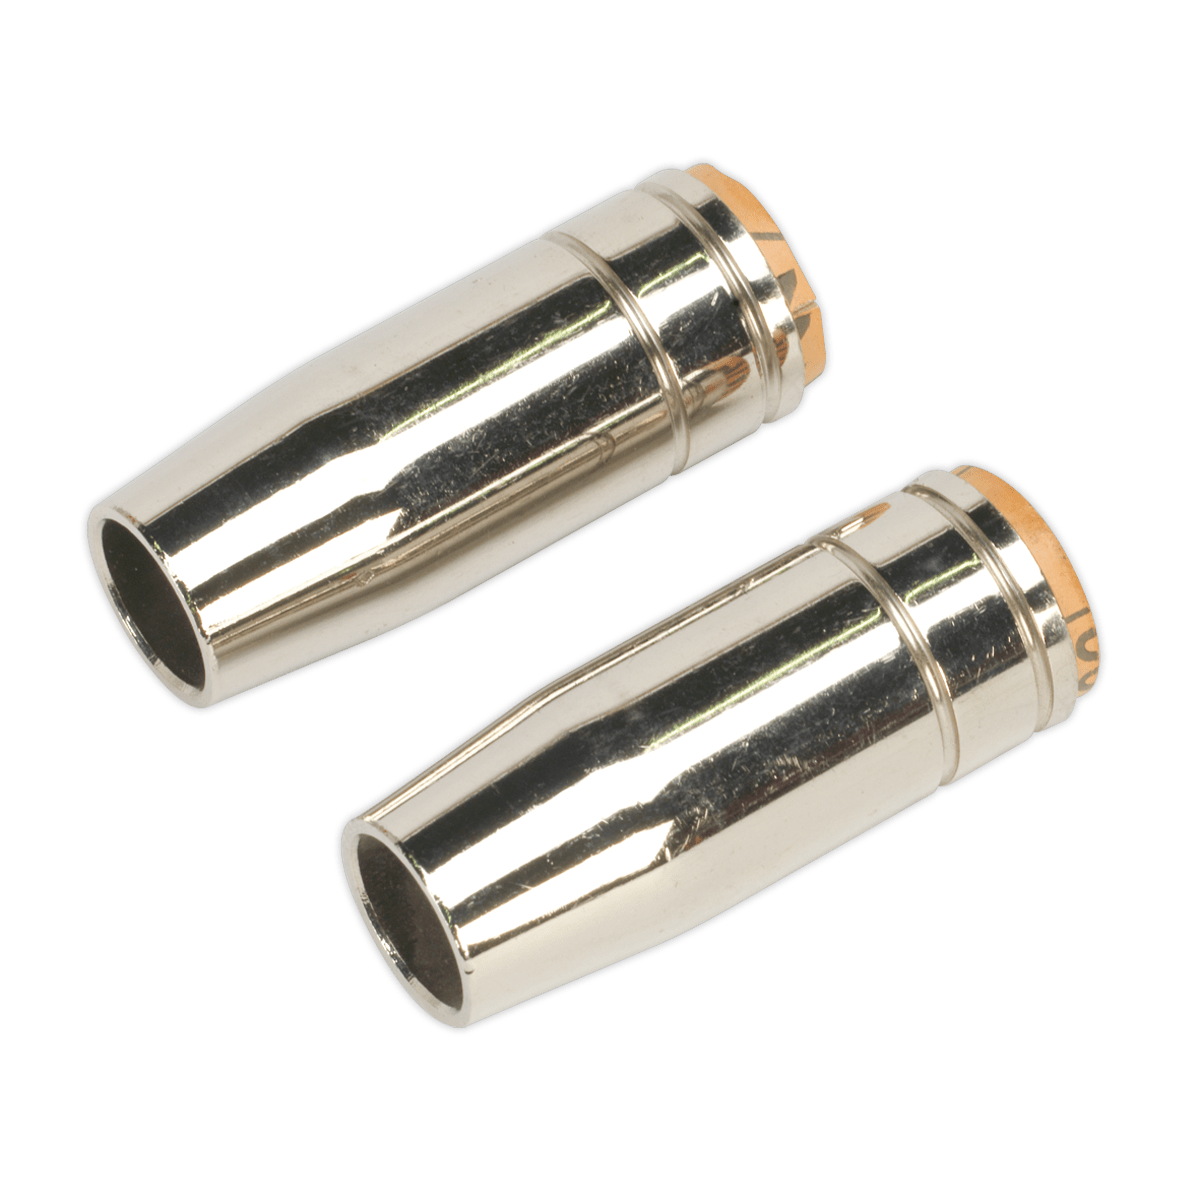 Sealey Conical Nozzle MB25/36 Pack of 2 MIG929   Conical nozzles suitable for our Powermig® 2750/3500/4500/Mightymig® 250 range of welders with MB25/36 torches.   toolforce.ie